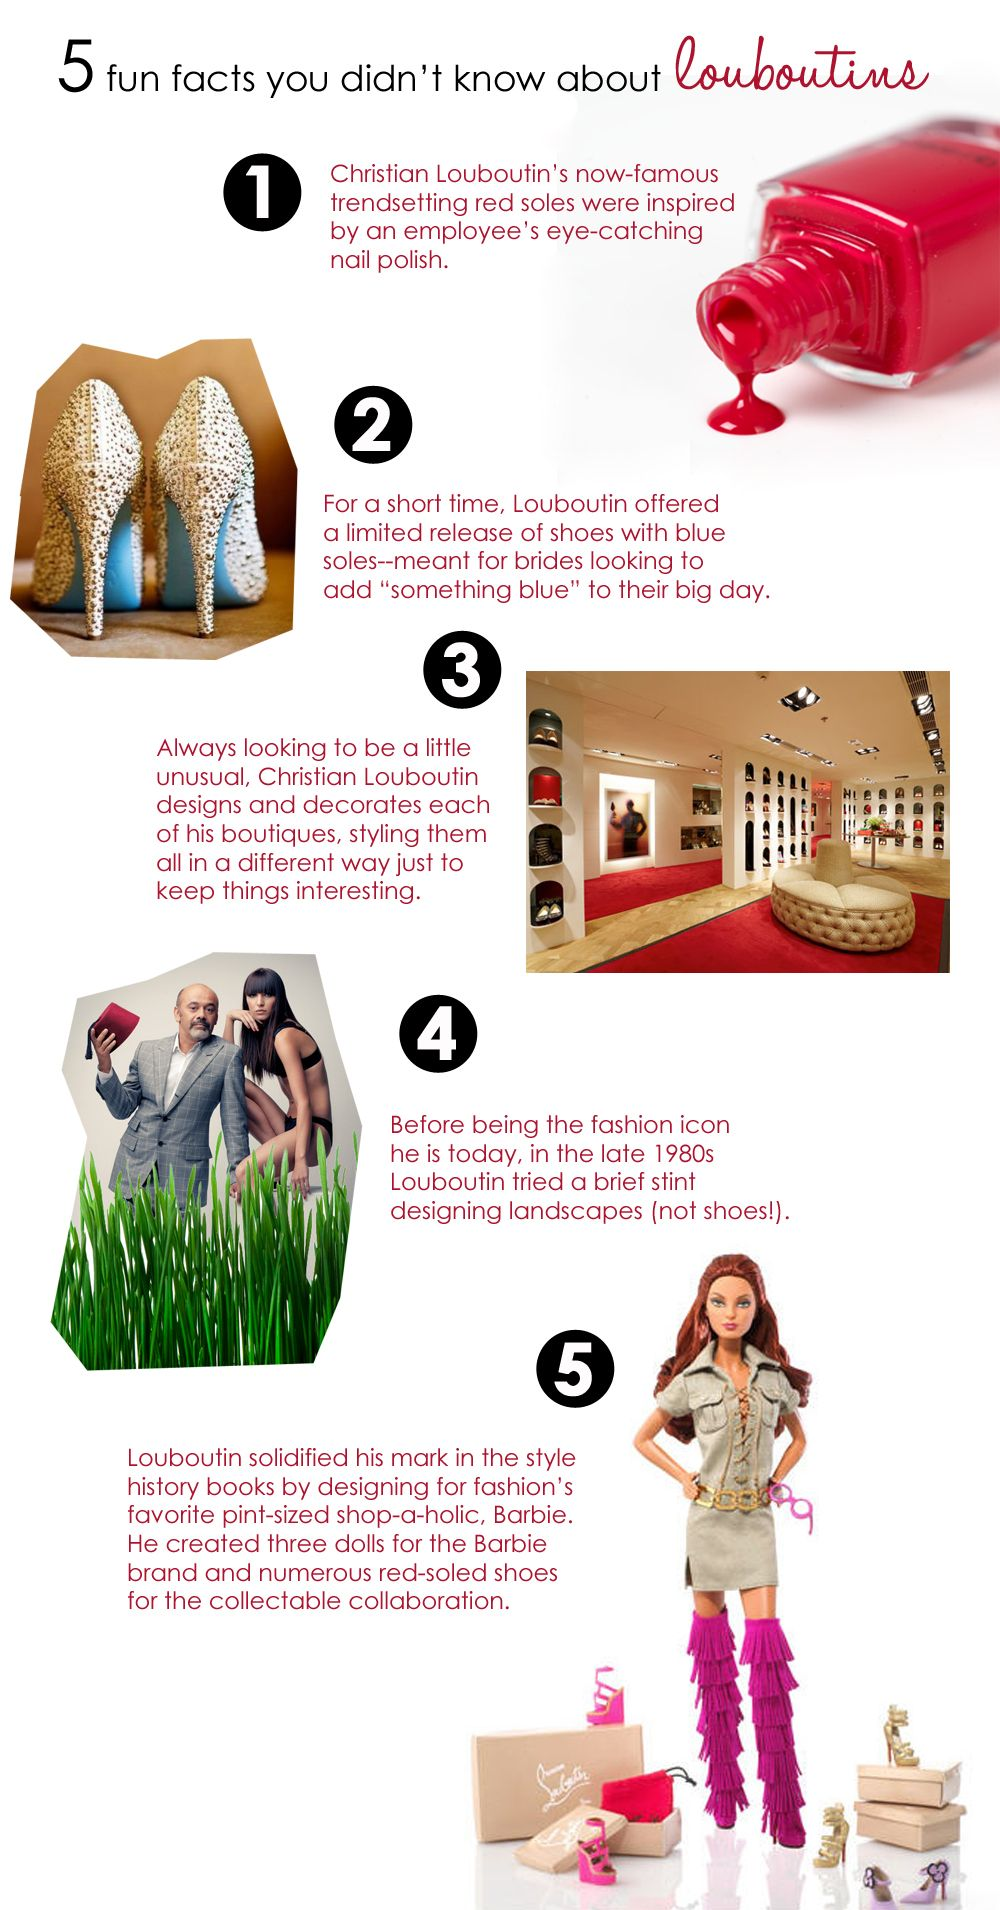 5 fun facts you didn't know about Louboutins | Facts and Hacks